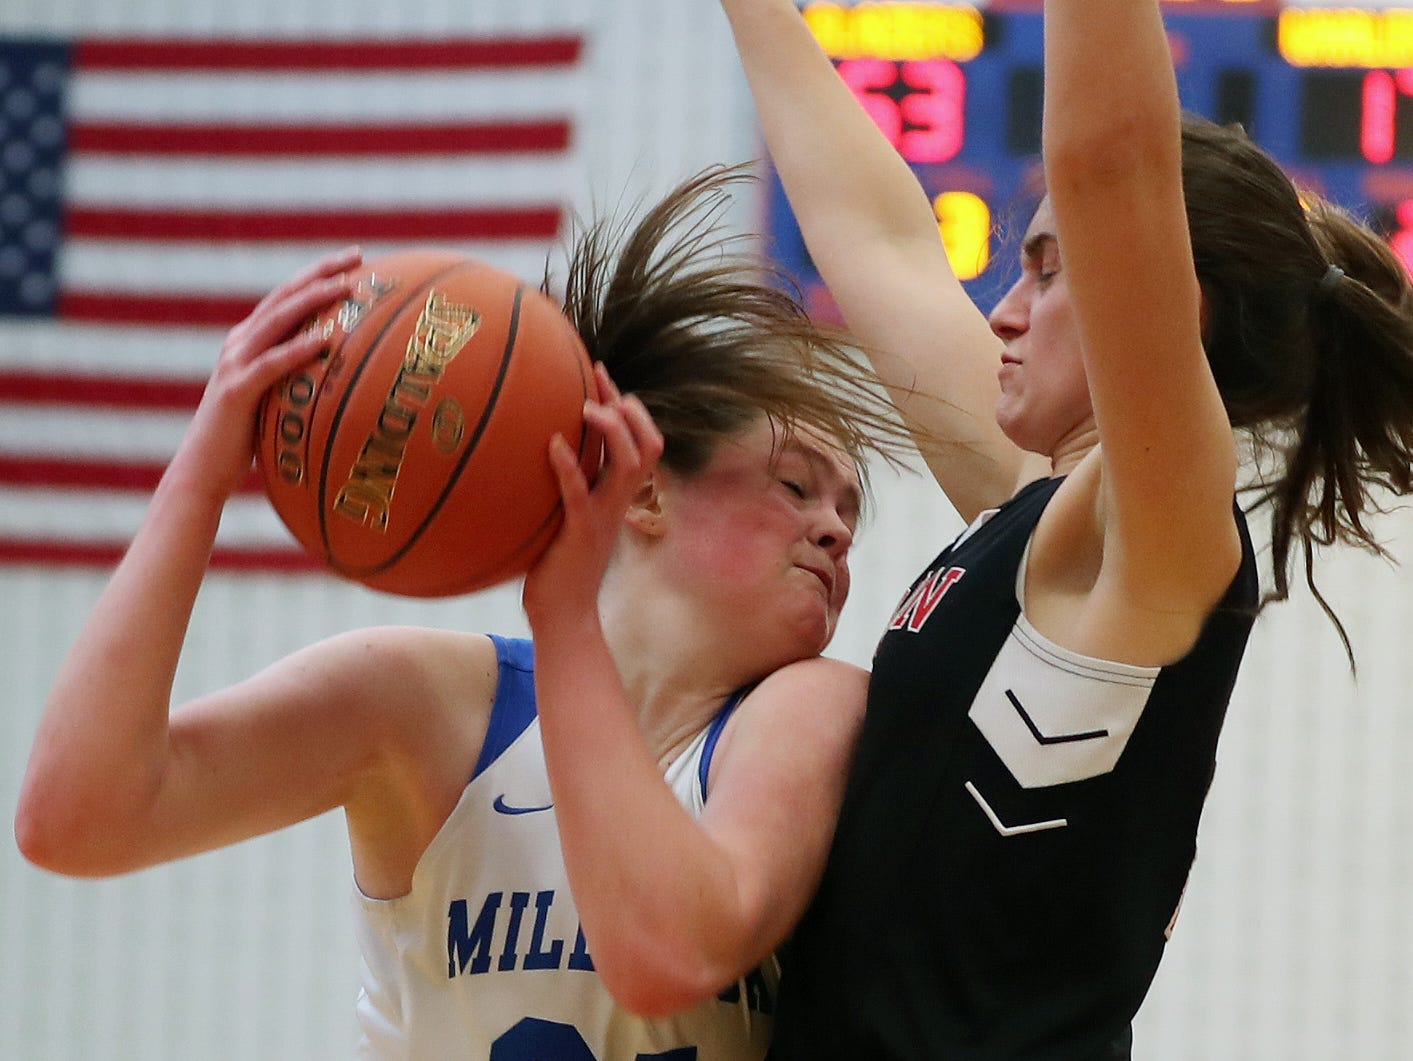 Millbrook's Erin Fox (21) drives to the basket in front of Pierson/Bridgehampton/Shelter Island's Katie Kneeland (2) during the girls regional final at SUNY New Paltz Match 9, 2019. Millbrook won the game.